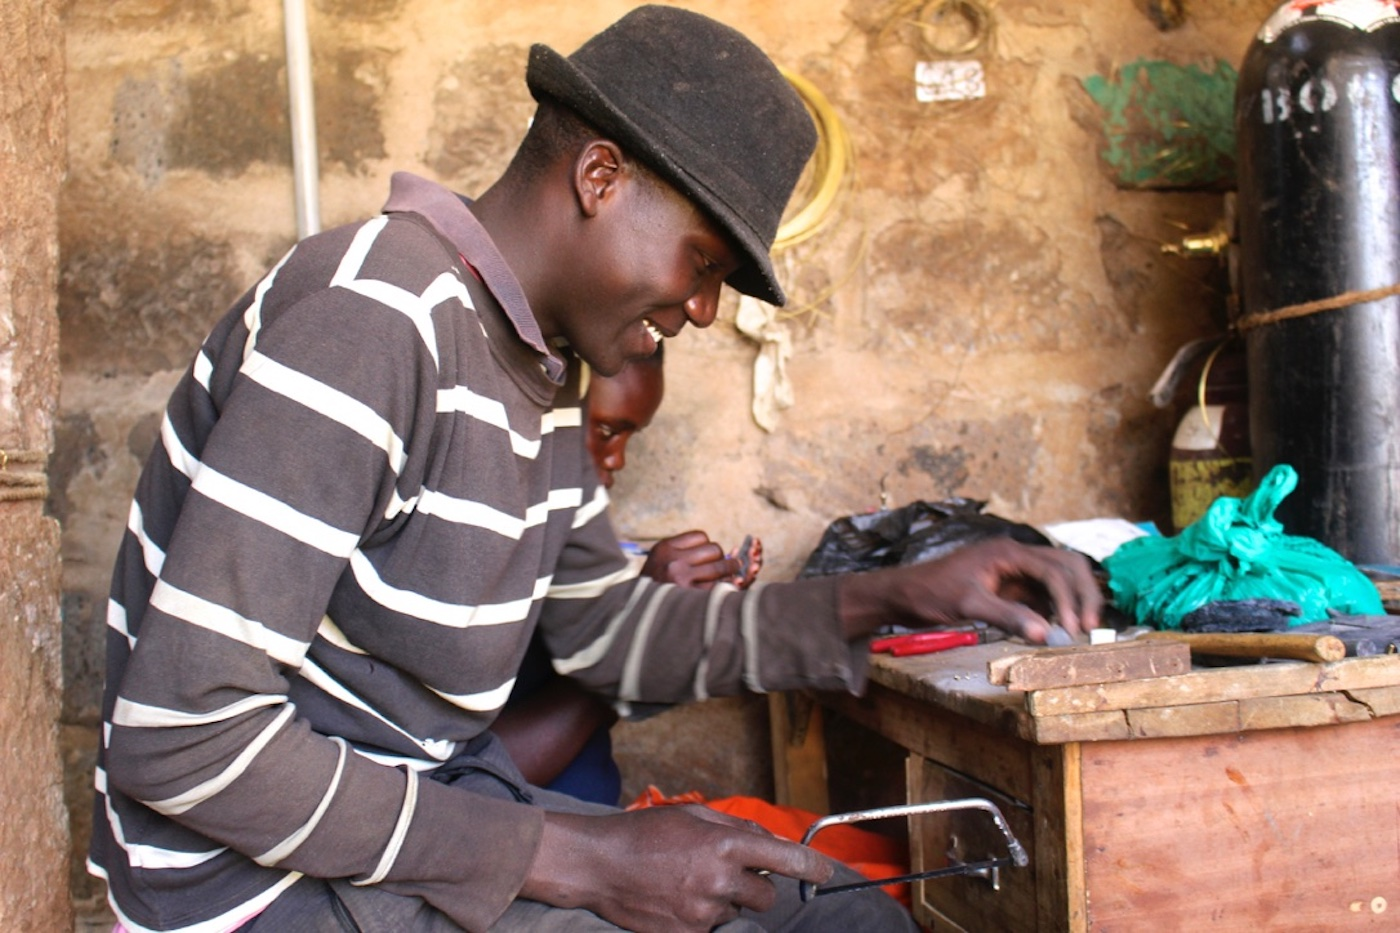 An artisan at work in Kenya: Ashepa Lifestyle jewellery is handmade by workers who receive a fair wage